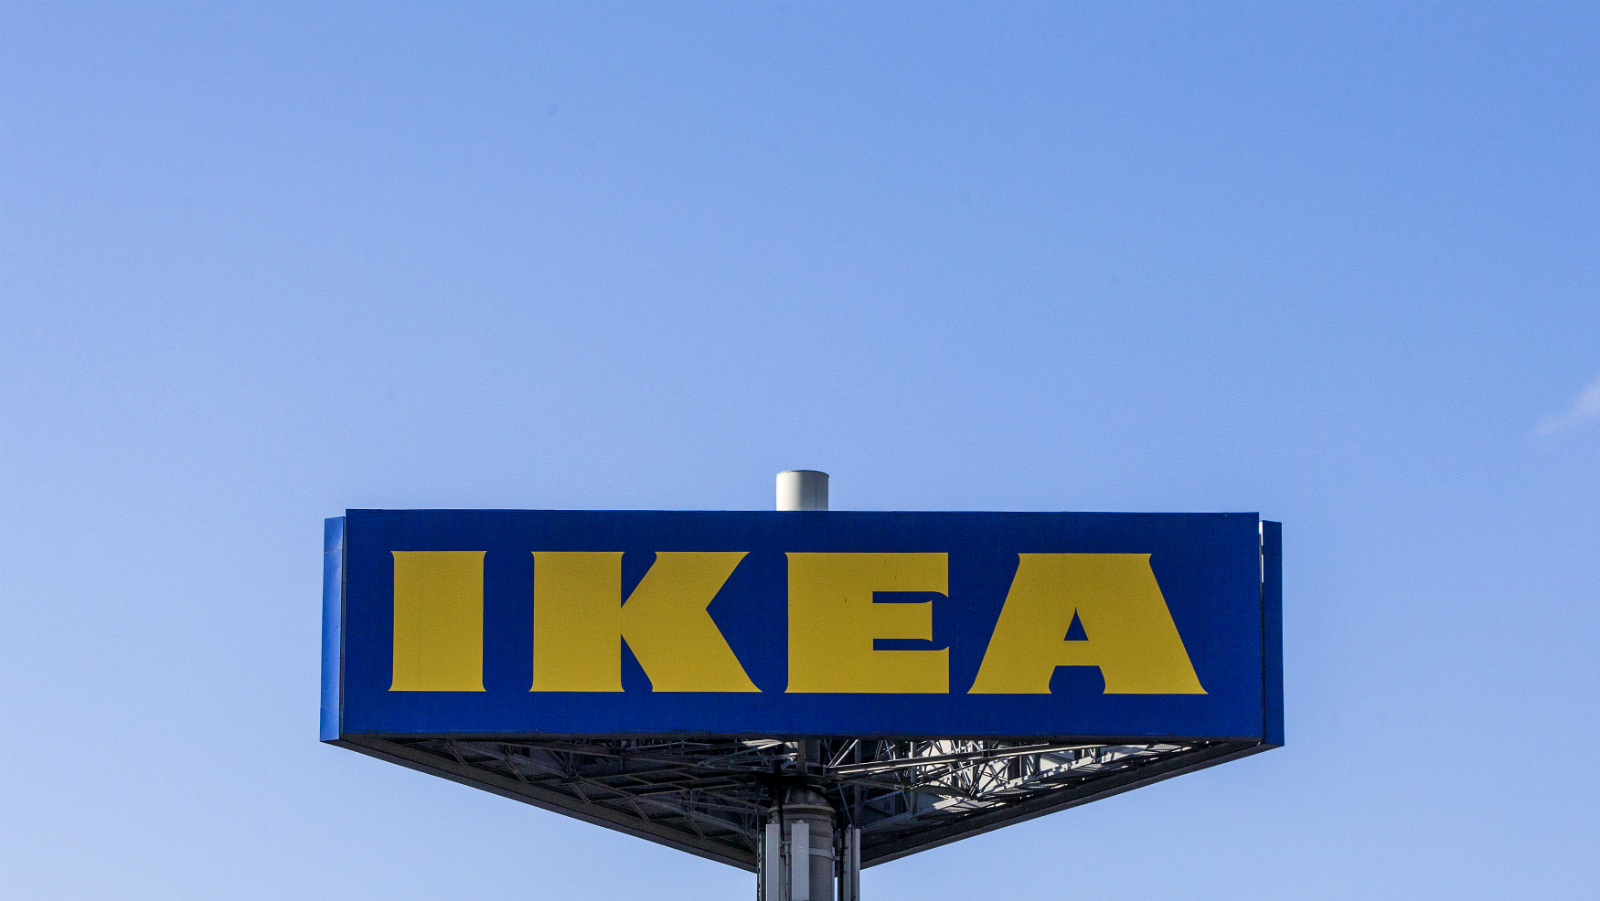 f2e4f5fc1bd2 IKEA prepares to open its first store in India after four years of ...